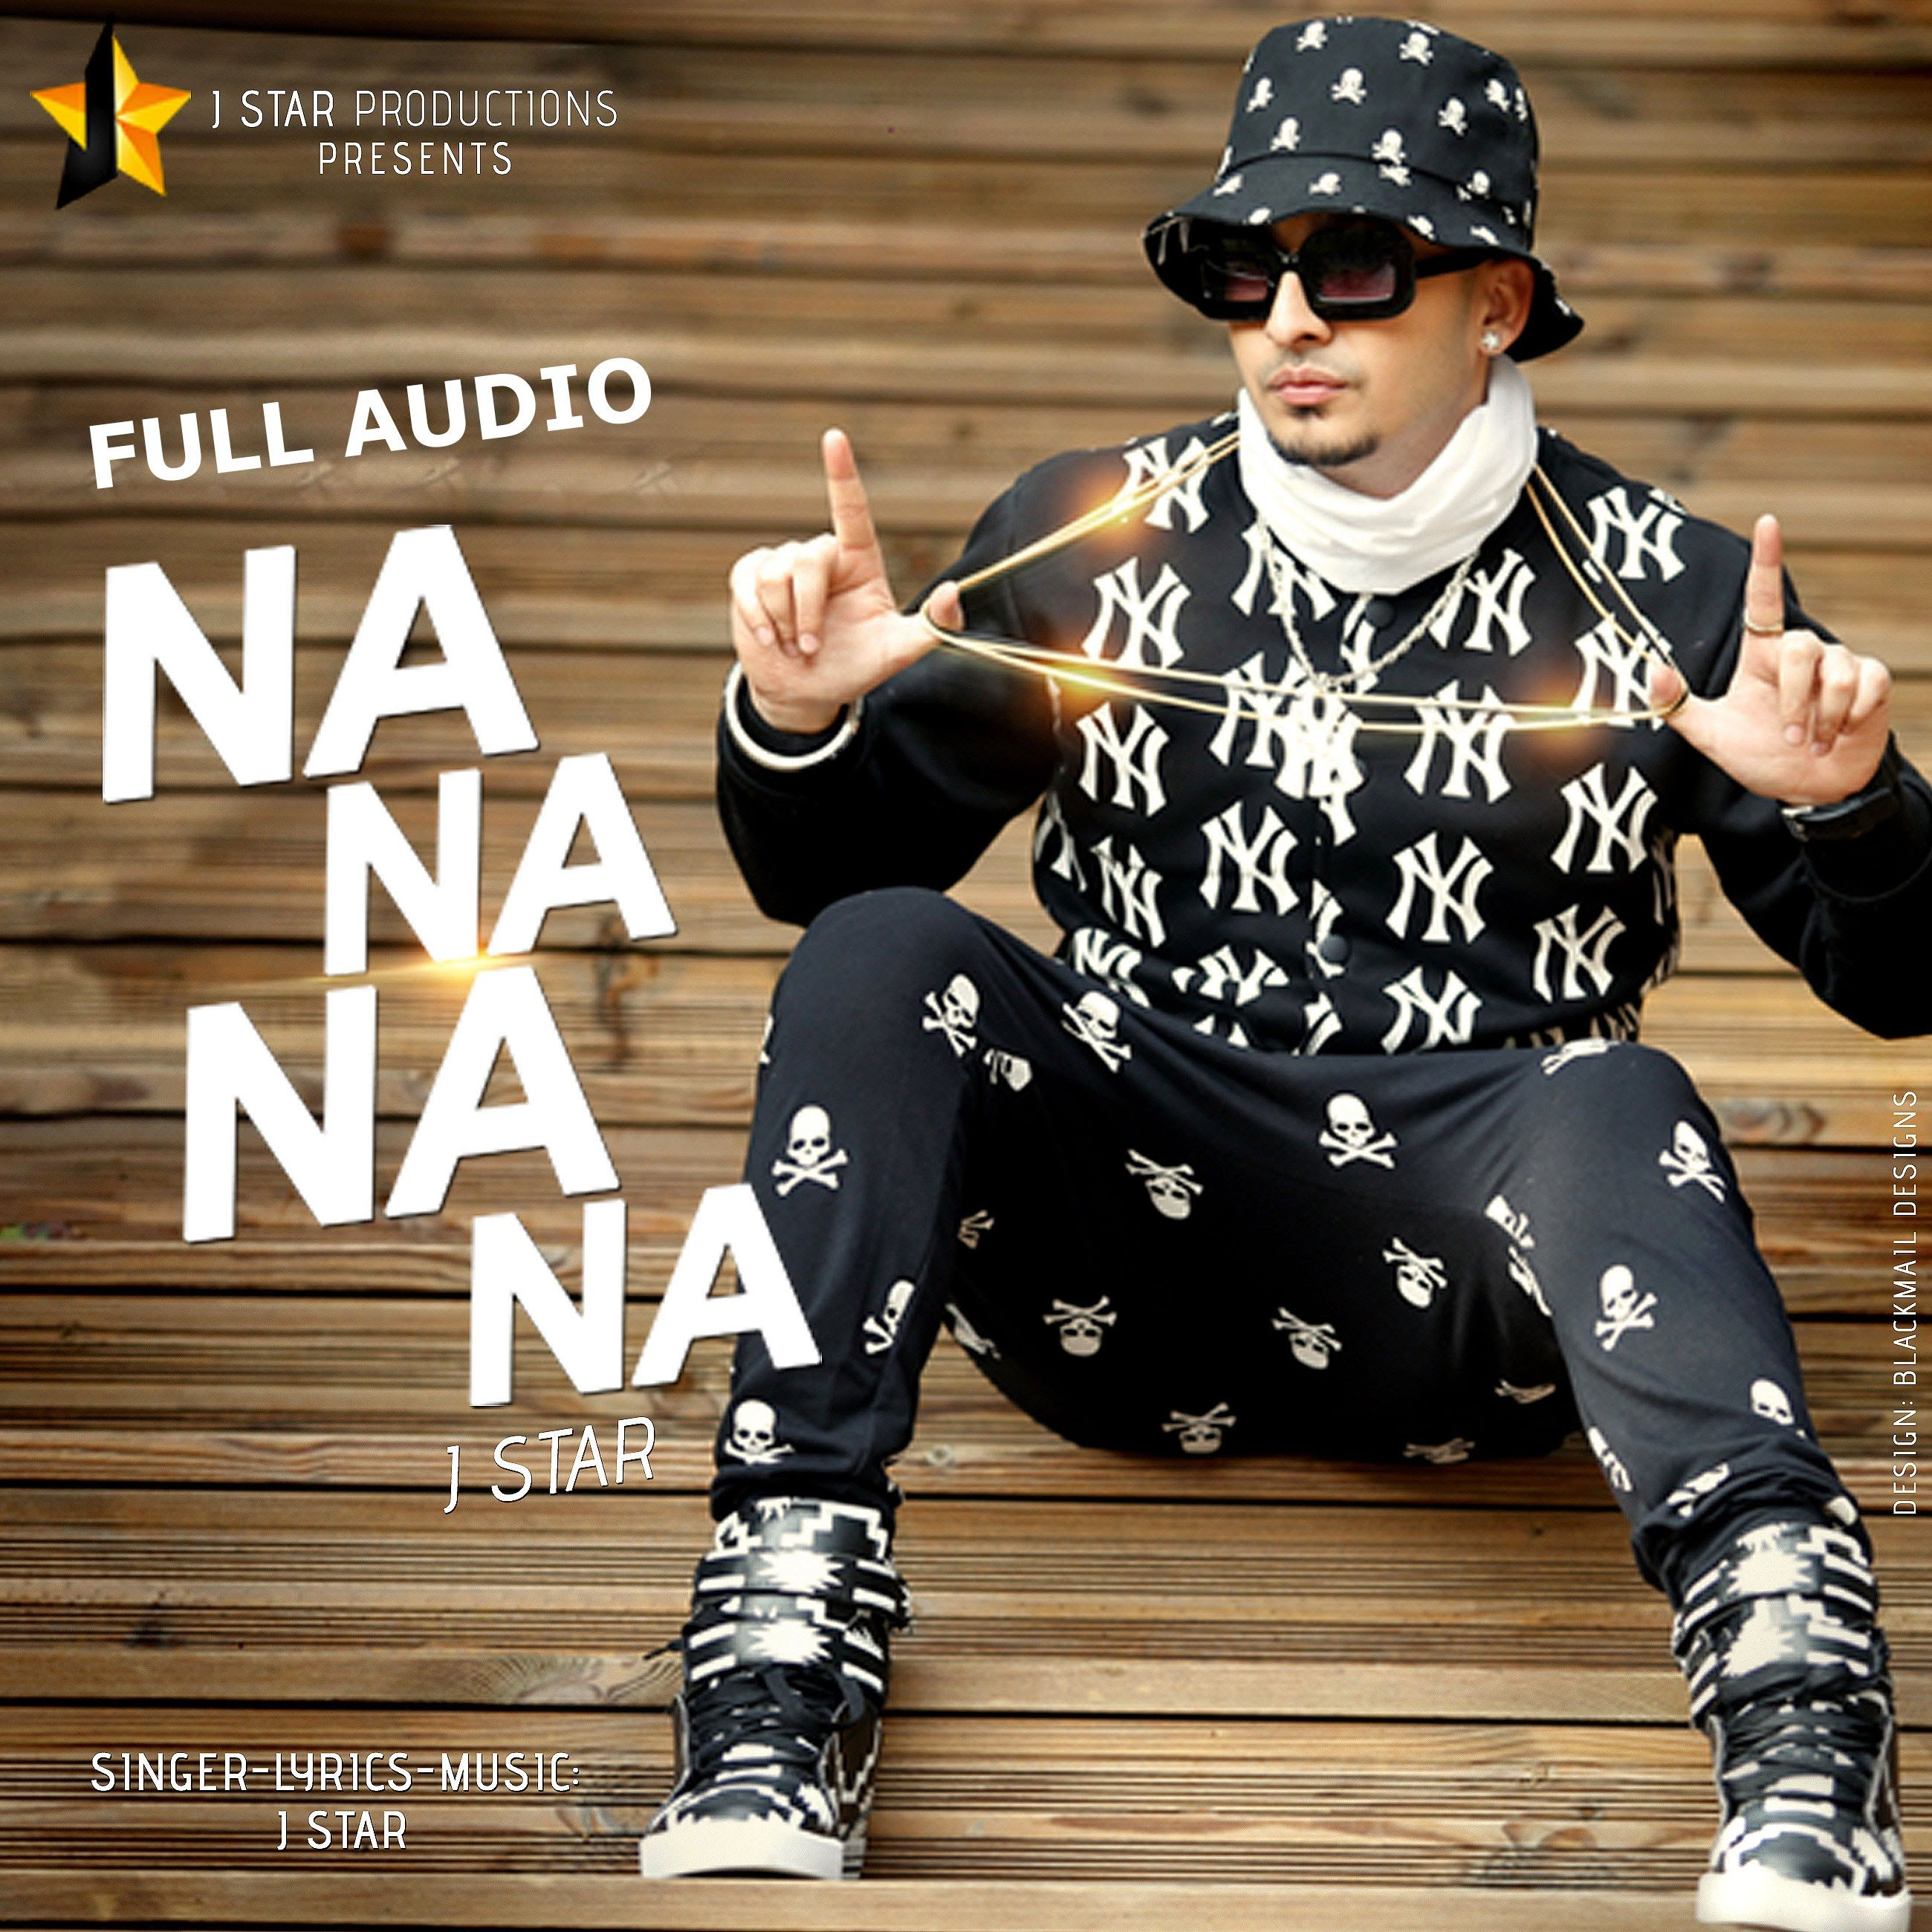 NA NA NA NA | J Star | Full Audio | Full Video Coming Soon | J Star  Productions | J star, Mp3 song download, Mp3 song